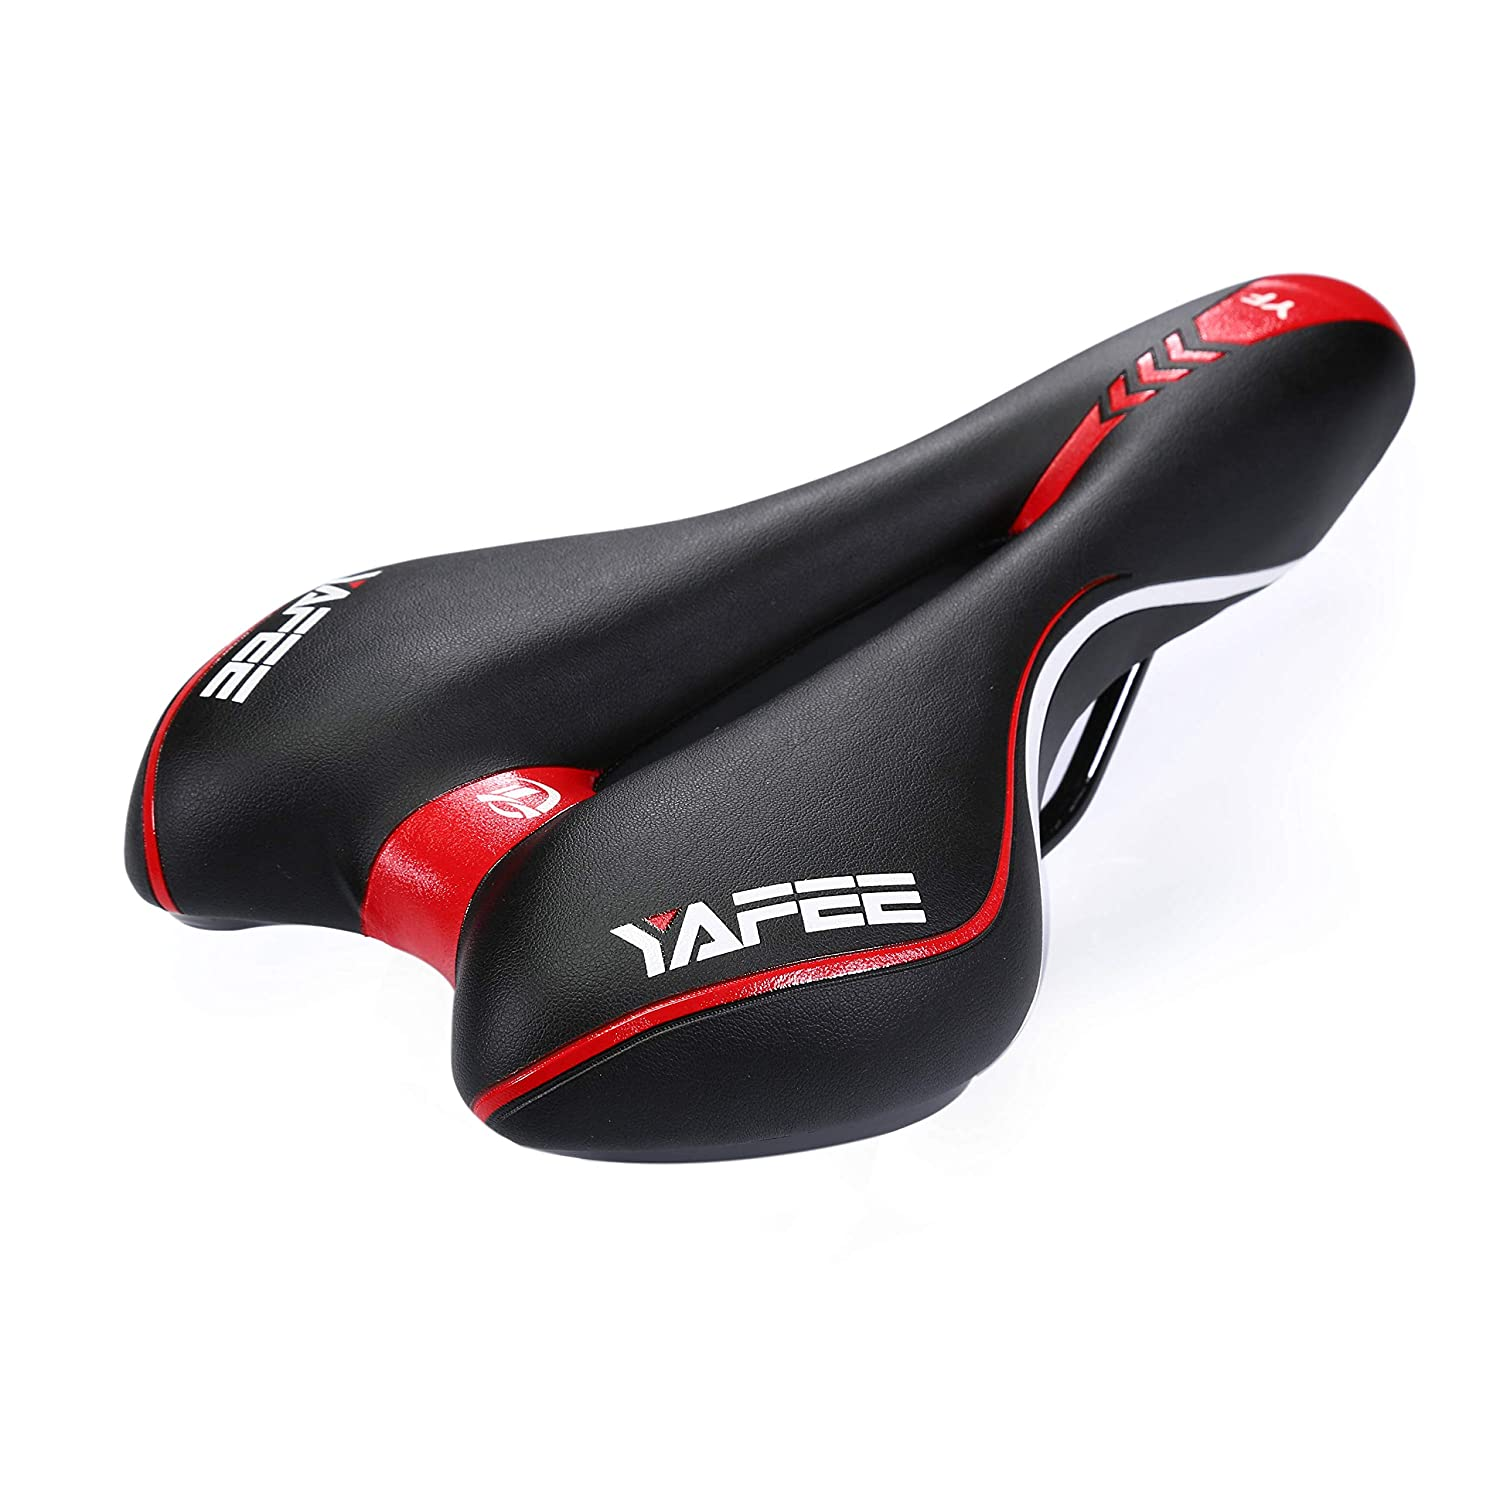 Trekking Road and City Use ONOGAL MTB 3097 Womens Anatomical Bike Seat for BTT